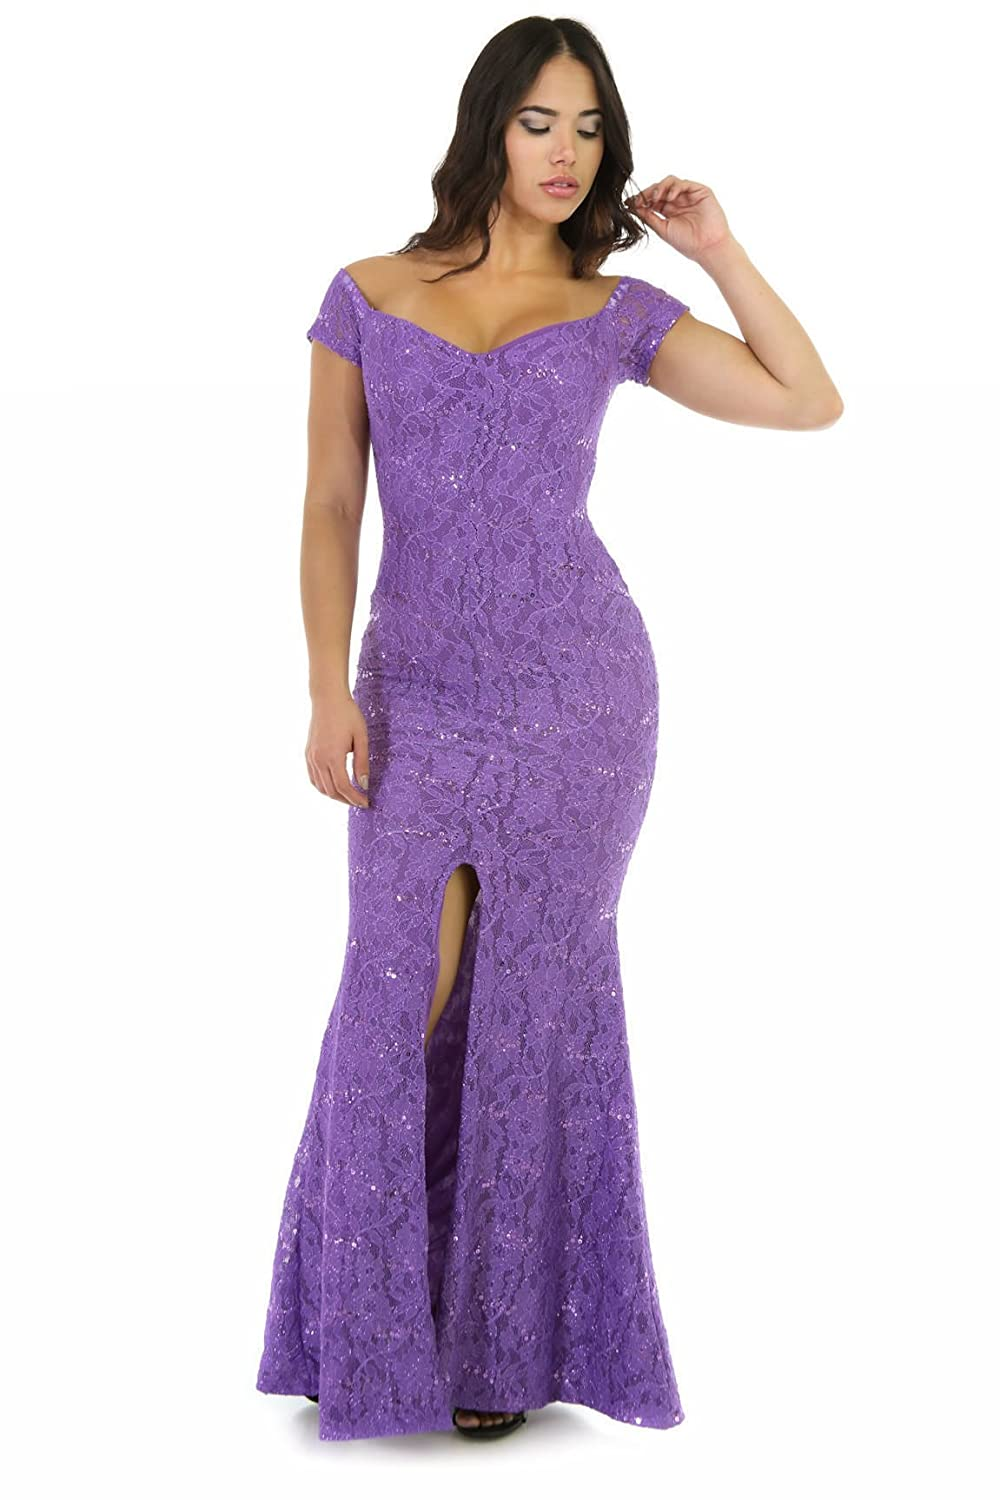 3ebef29e6c2 Amazon.com  GITI ONLINE Glitter Maxi Dress Jade  Clothing